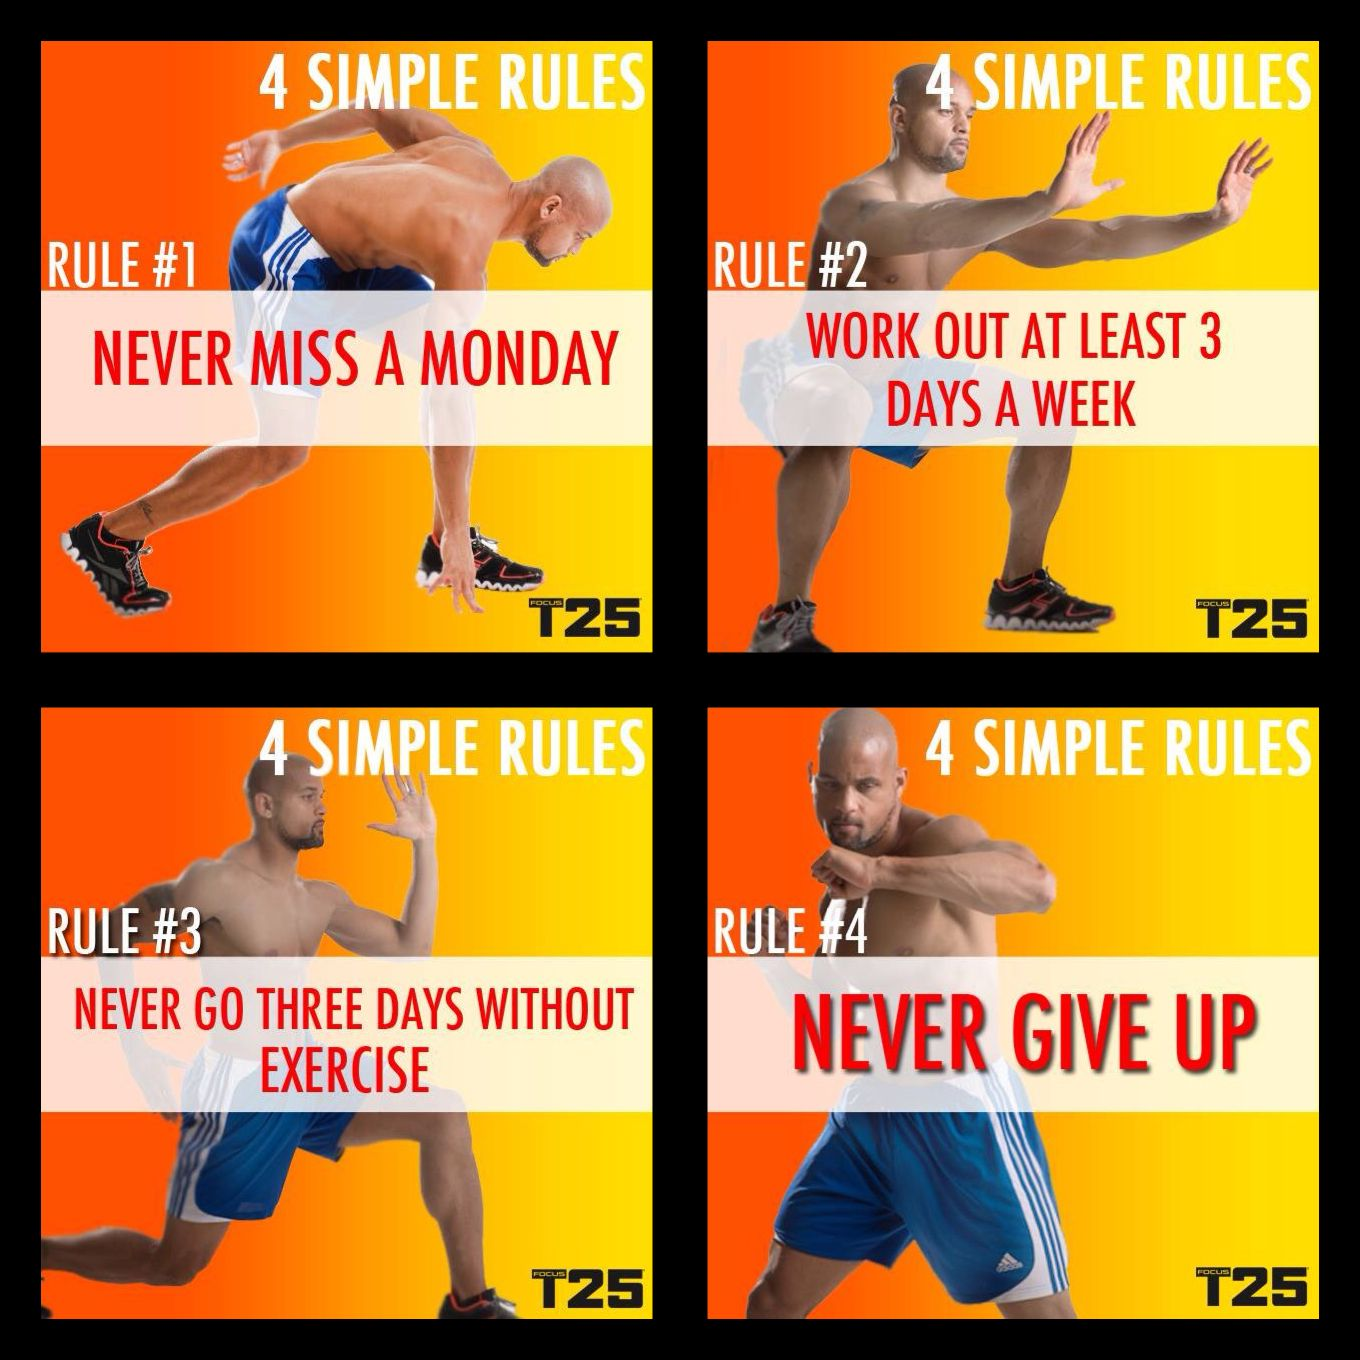 Insanity Workout T25: Shaun T's 4 Simple Rules For Working Out.